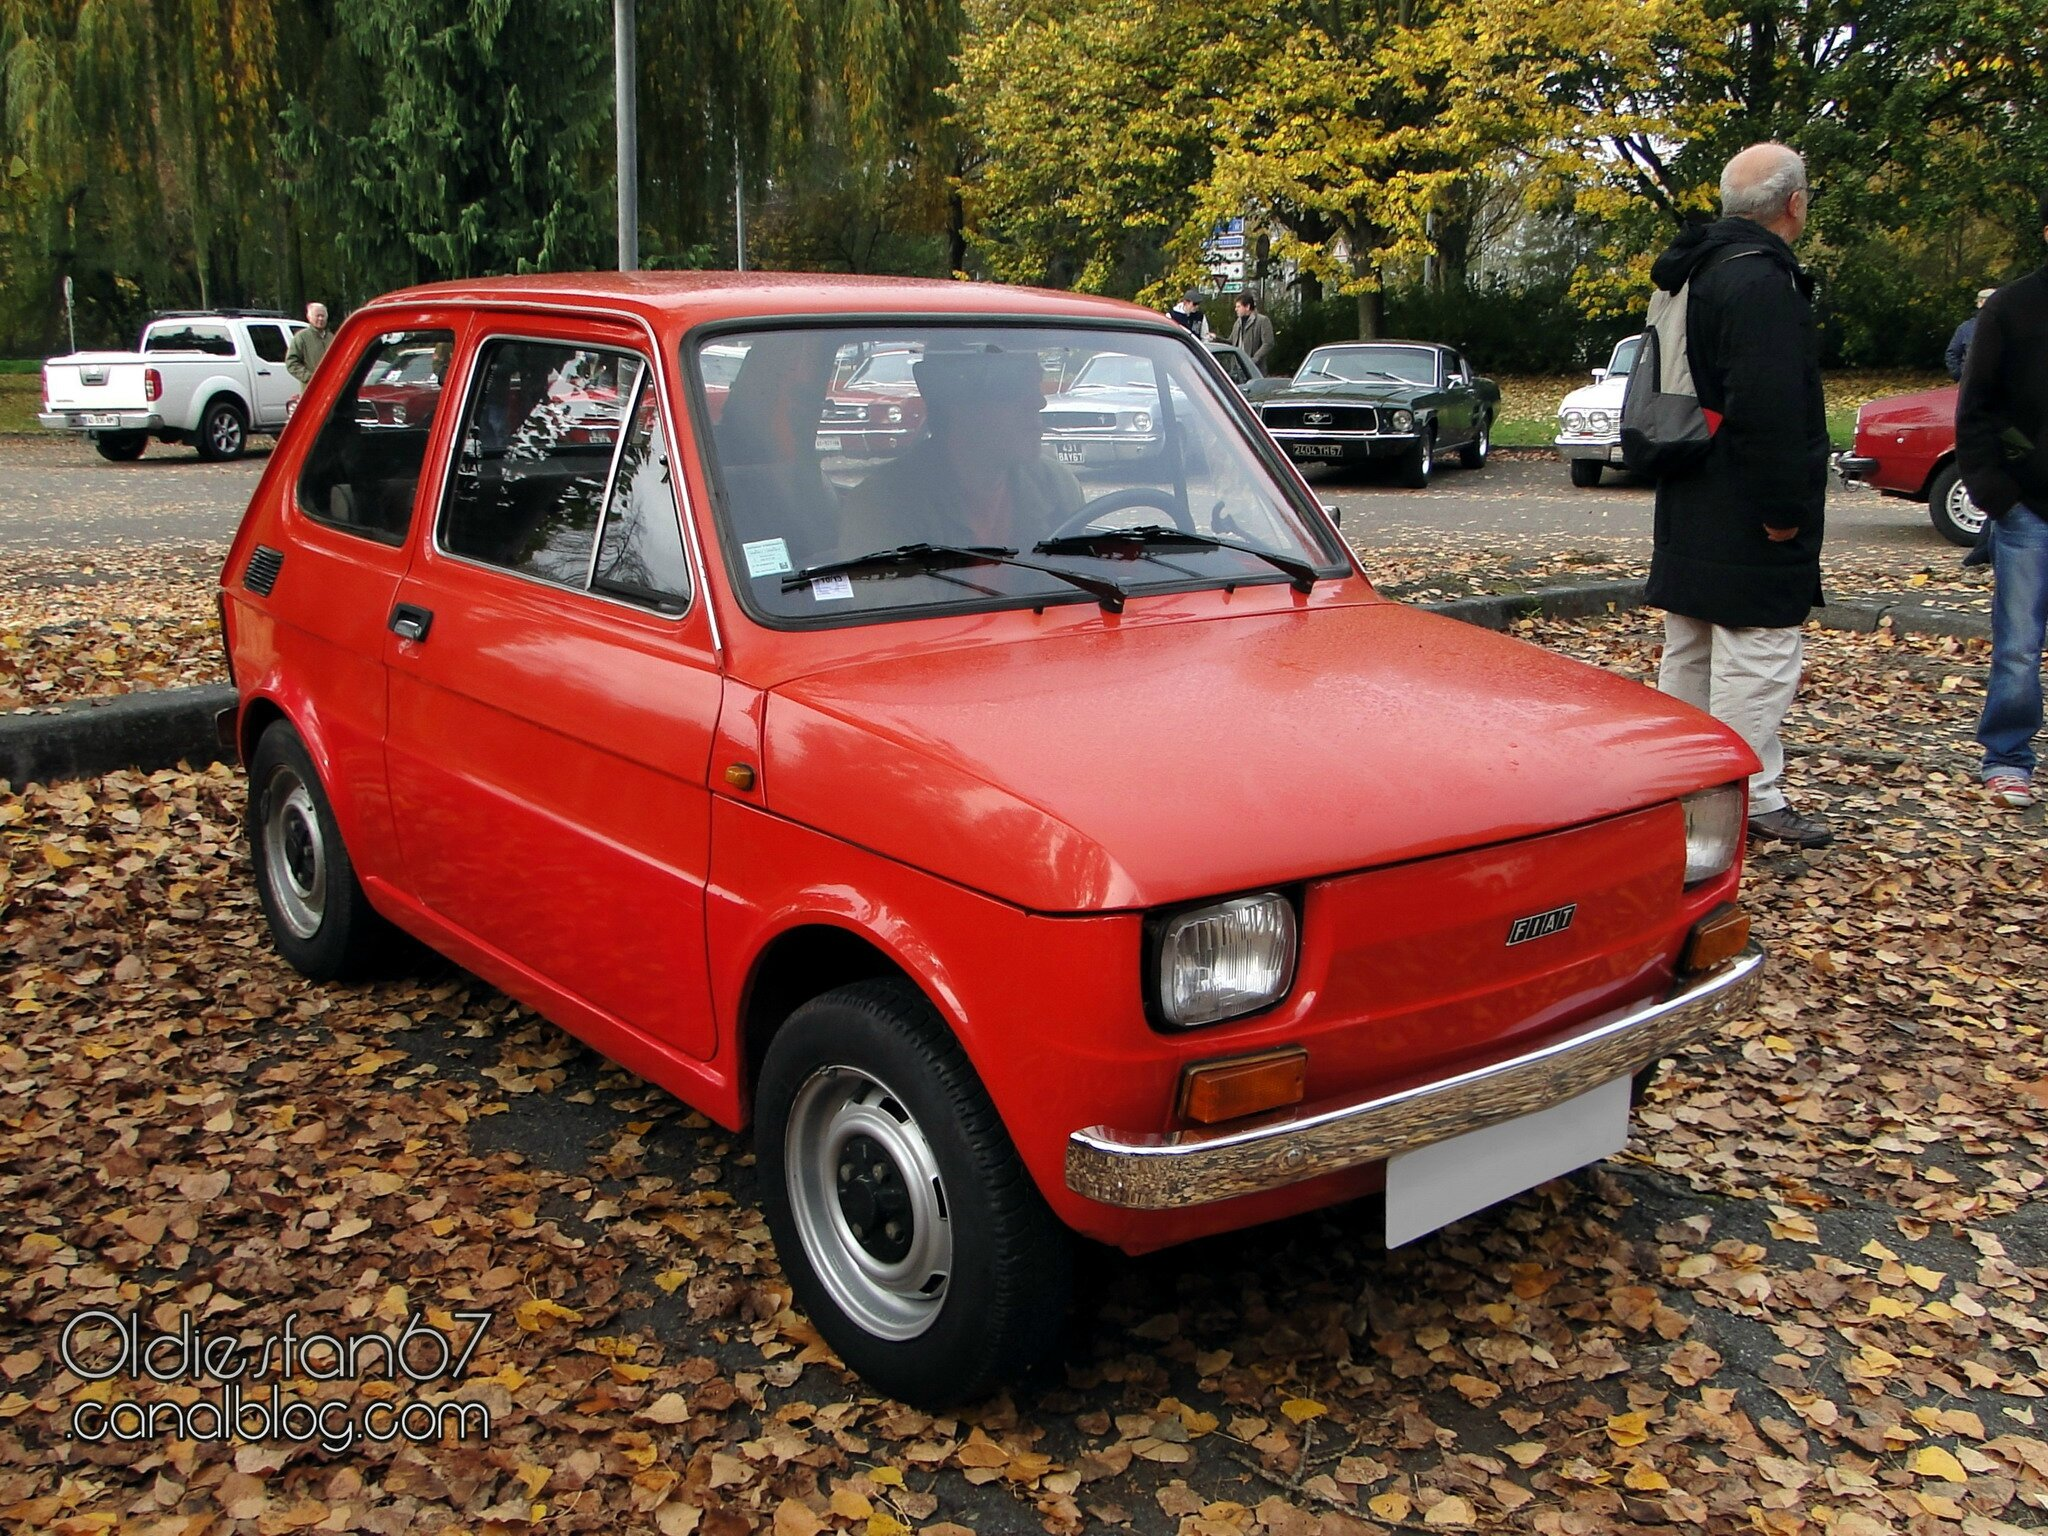 fiat 126 bambino 650 oldiesfan67 mon blog auto. Black Bedroom Furniture Sets. Home Design Ideas